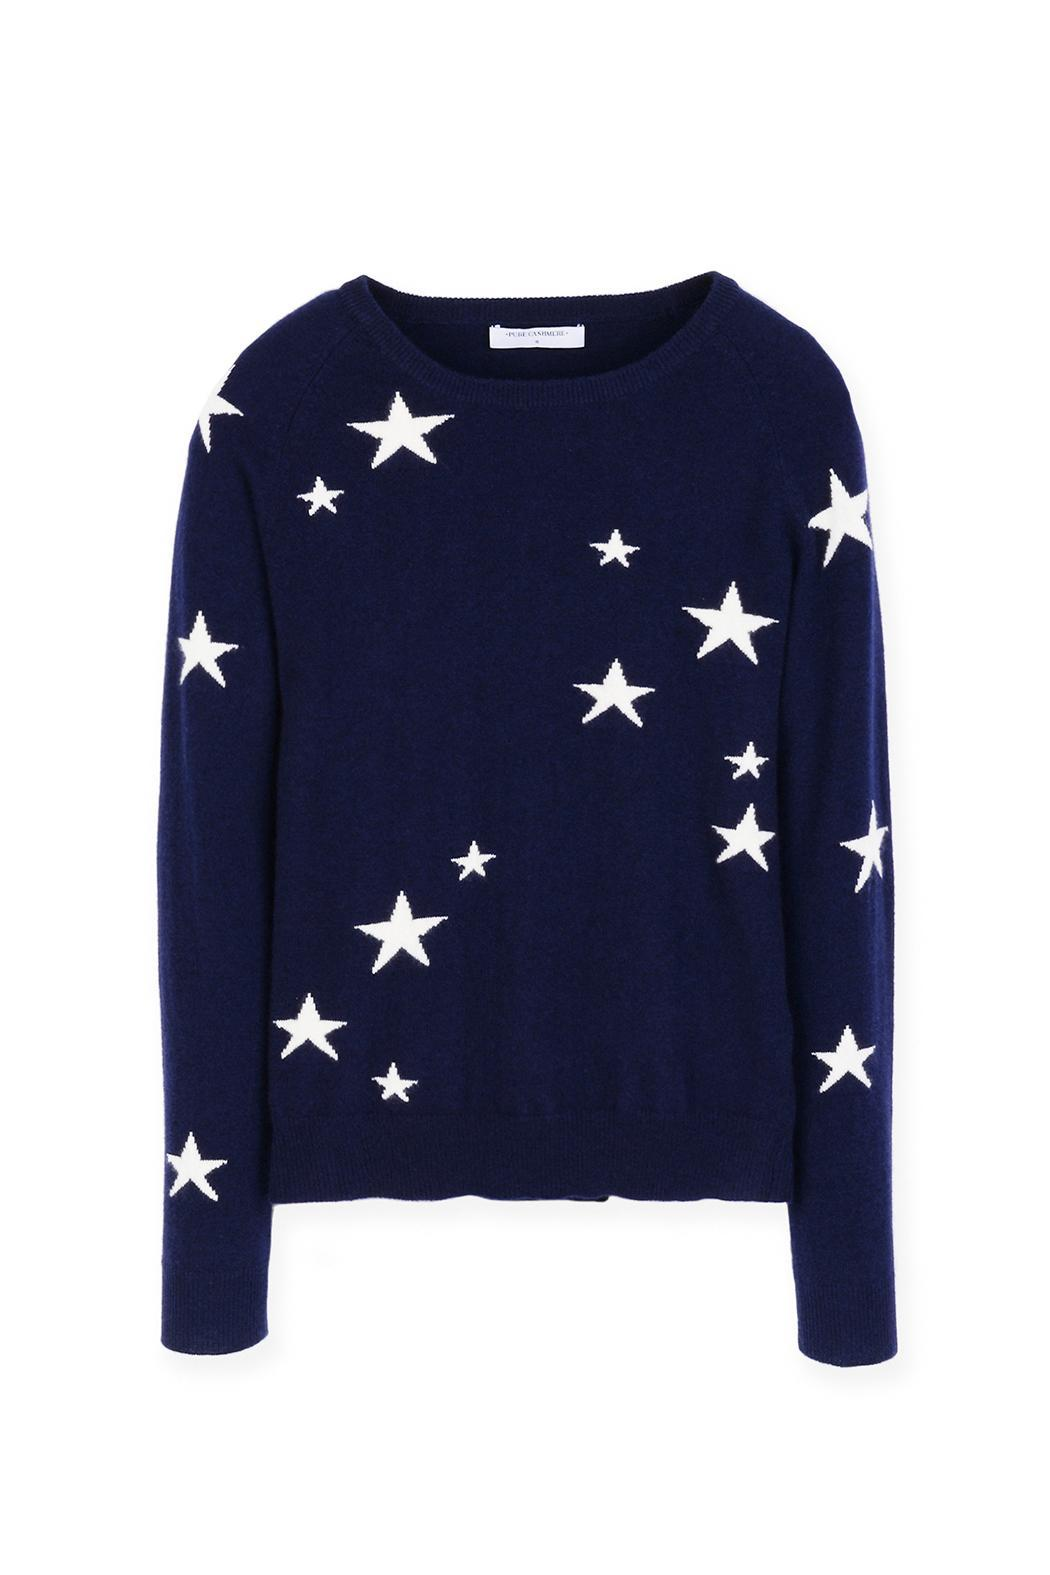 PURE CASHMERE Star Crewneck Sweater from New Jersey by ...